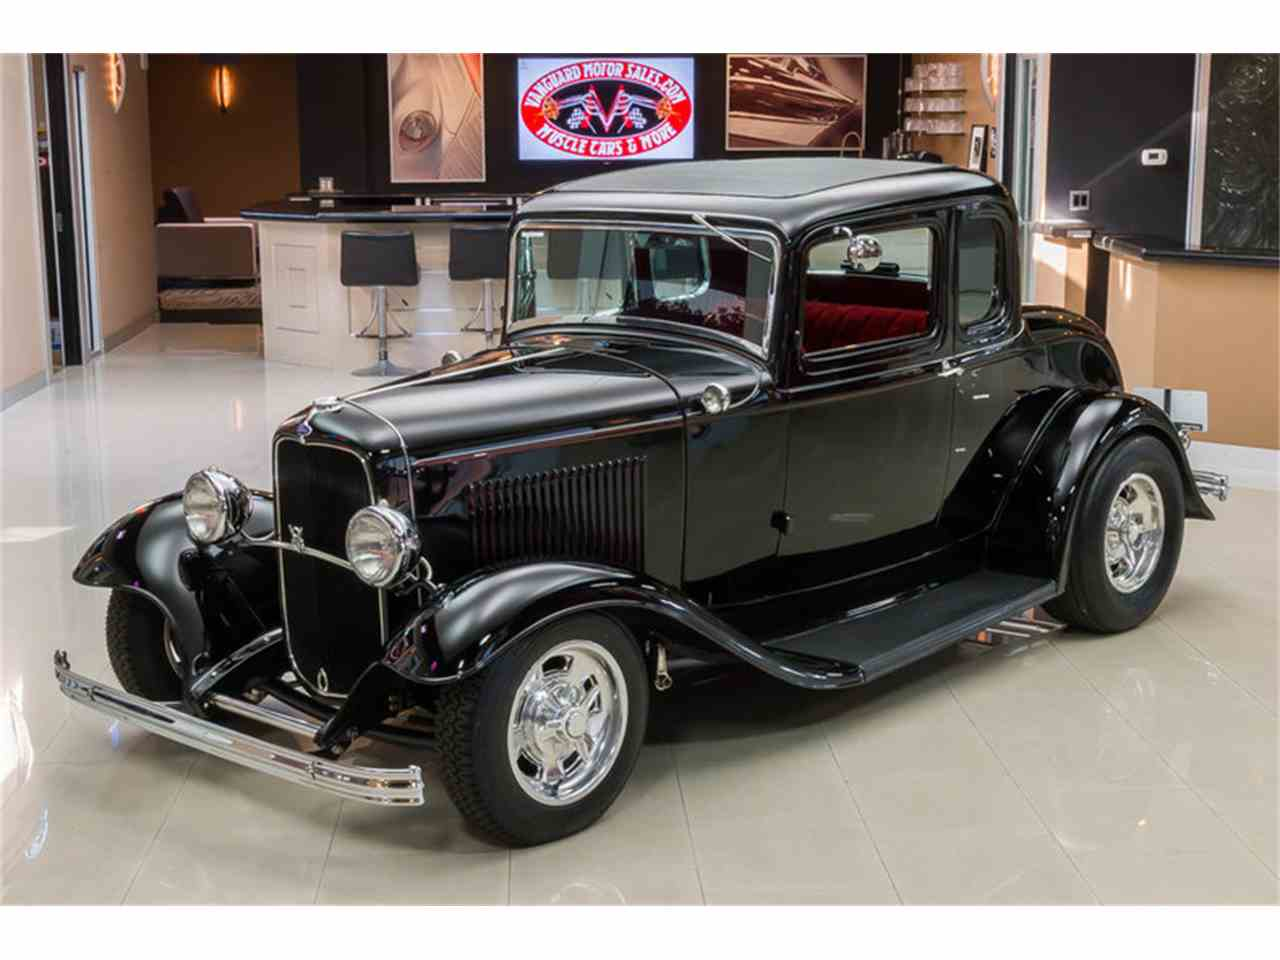 1932 ford 5 window coupe street rod for sale classiccars for 1932 ford 5 window coupe for sale